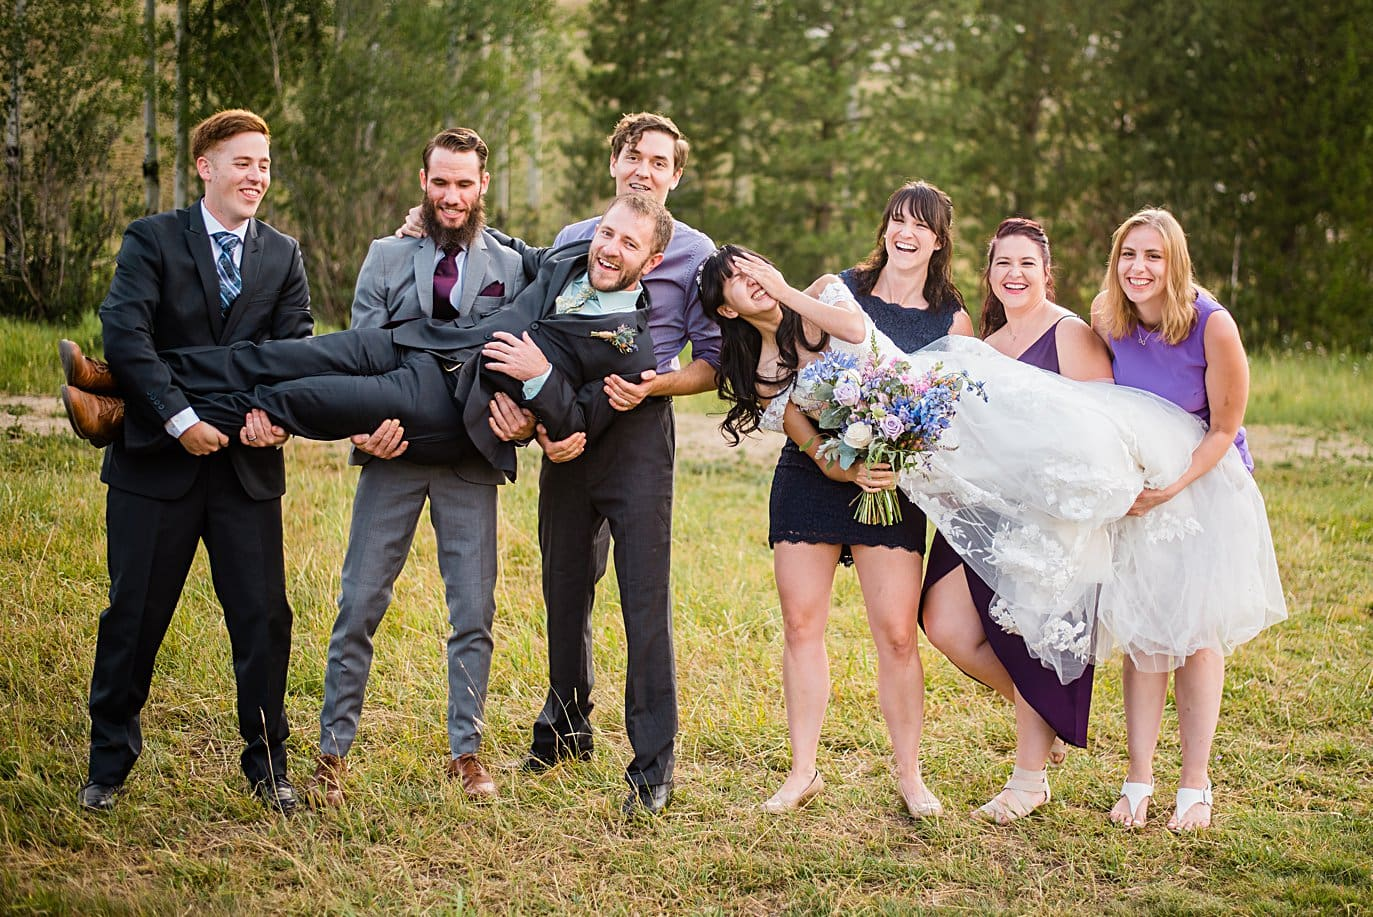 friends lift bride and groom after outdoor Colorado mountain ceremony at intimate Grand Lake wedding by Estes Park wedding photographer Jennie Crate